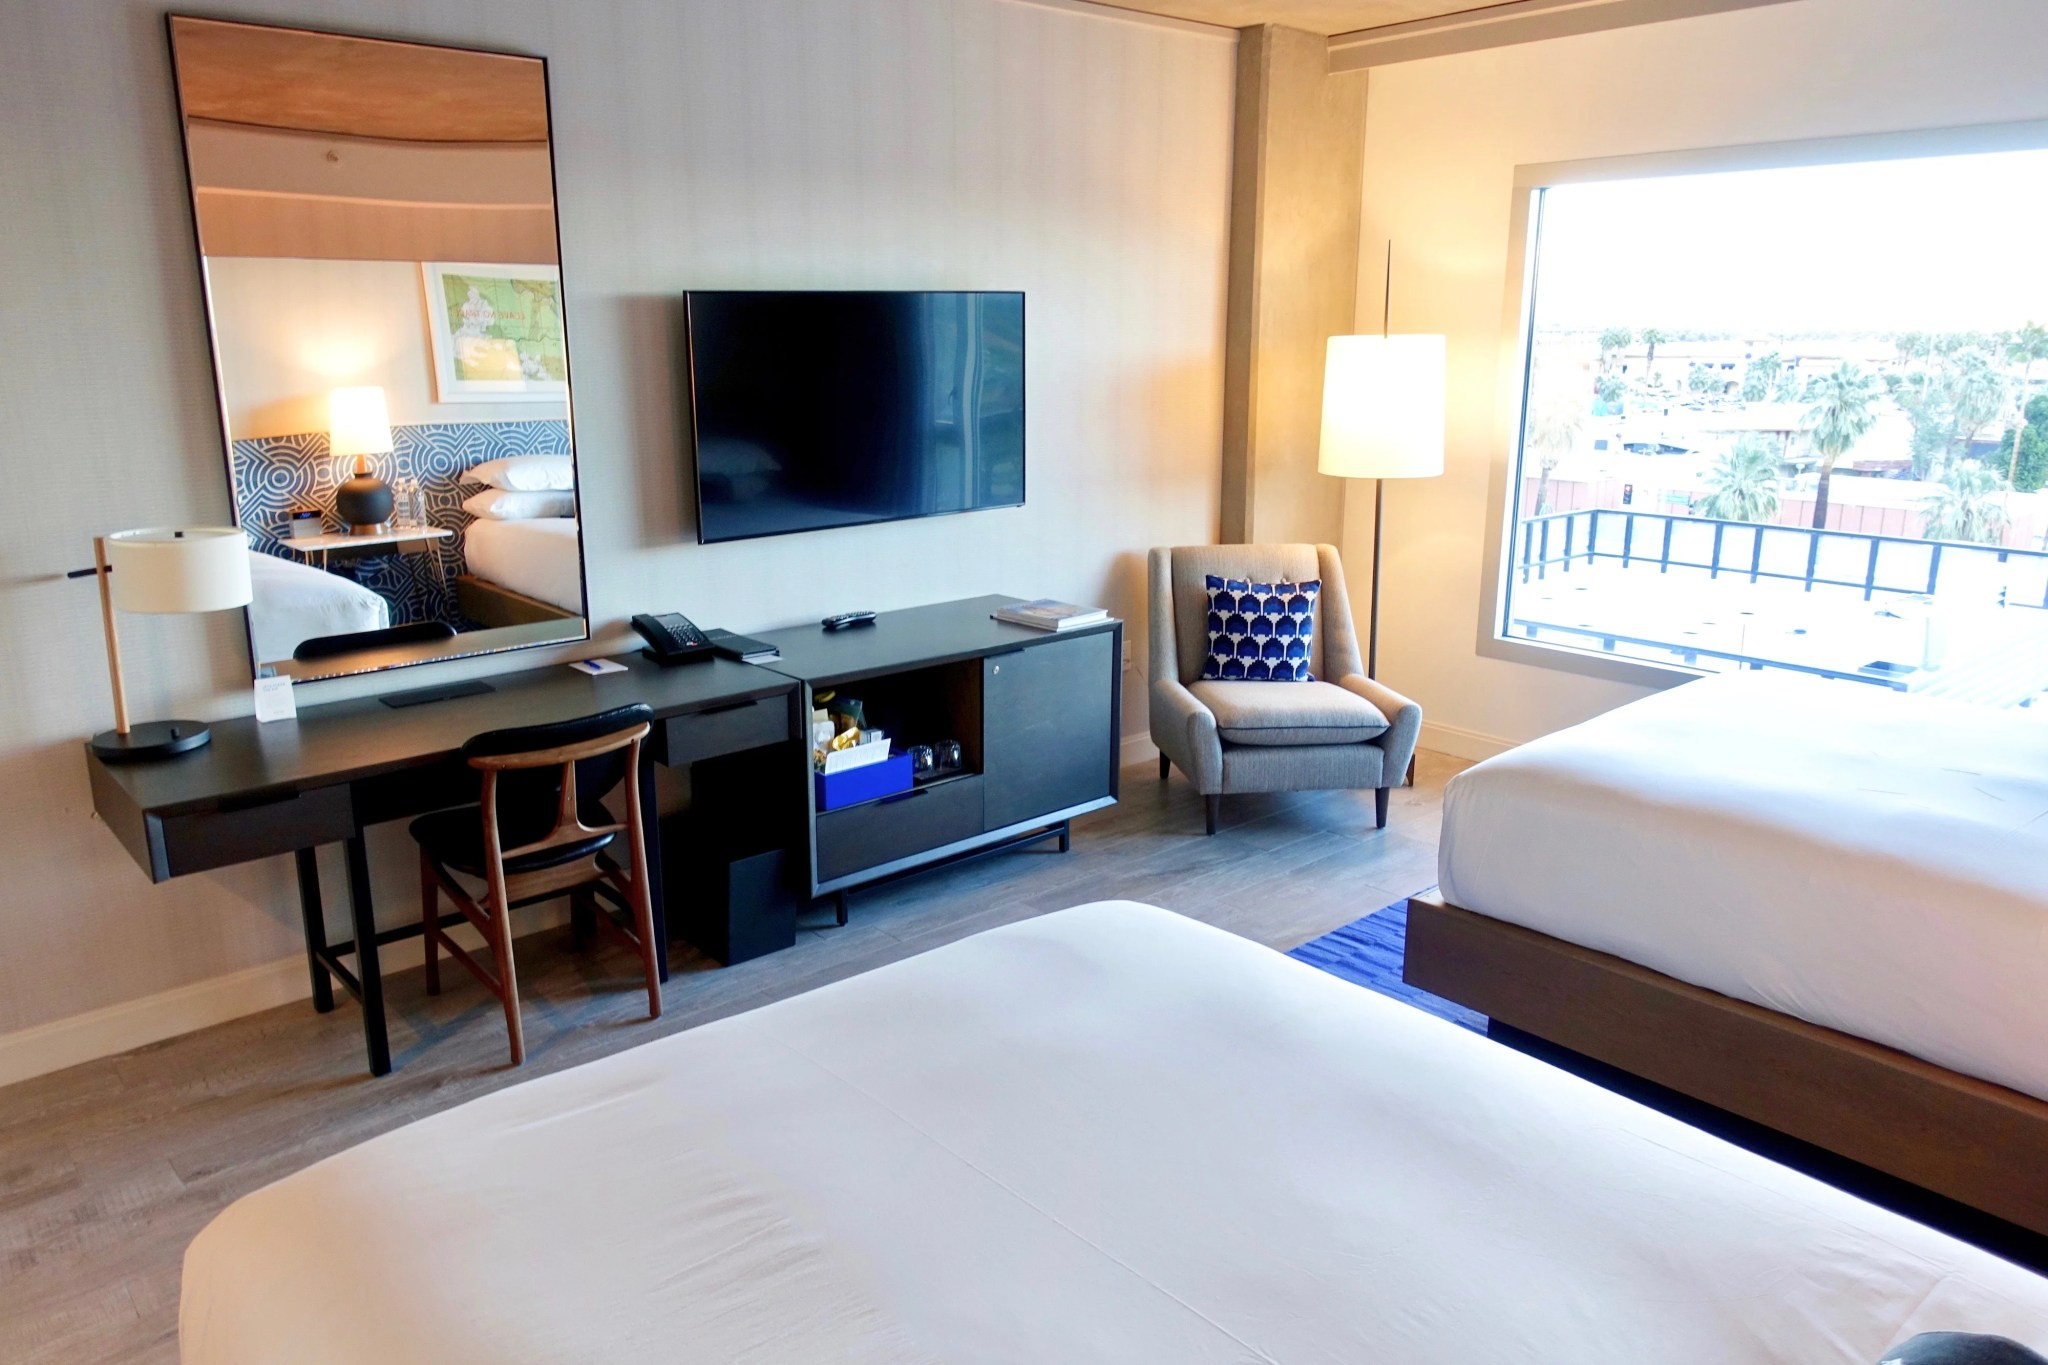 Desert Oasis: A First Look at the Kimpton Rowan Palm Springs Hotel